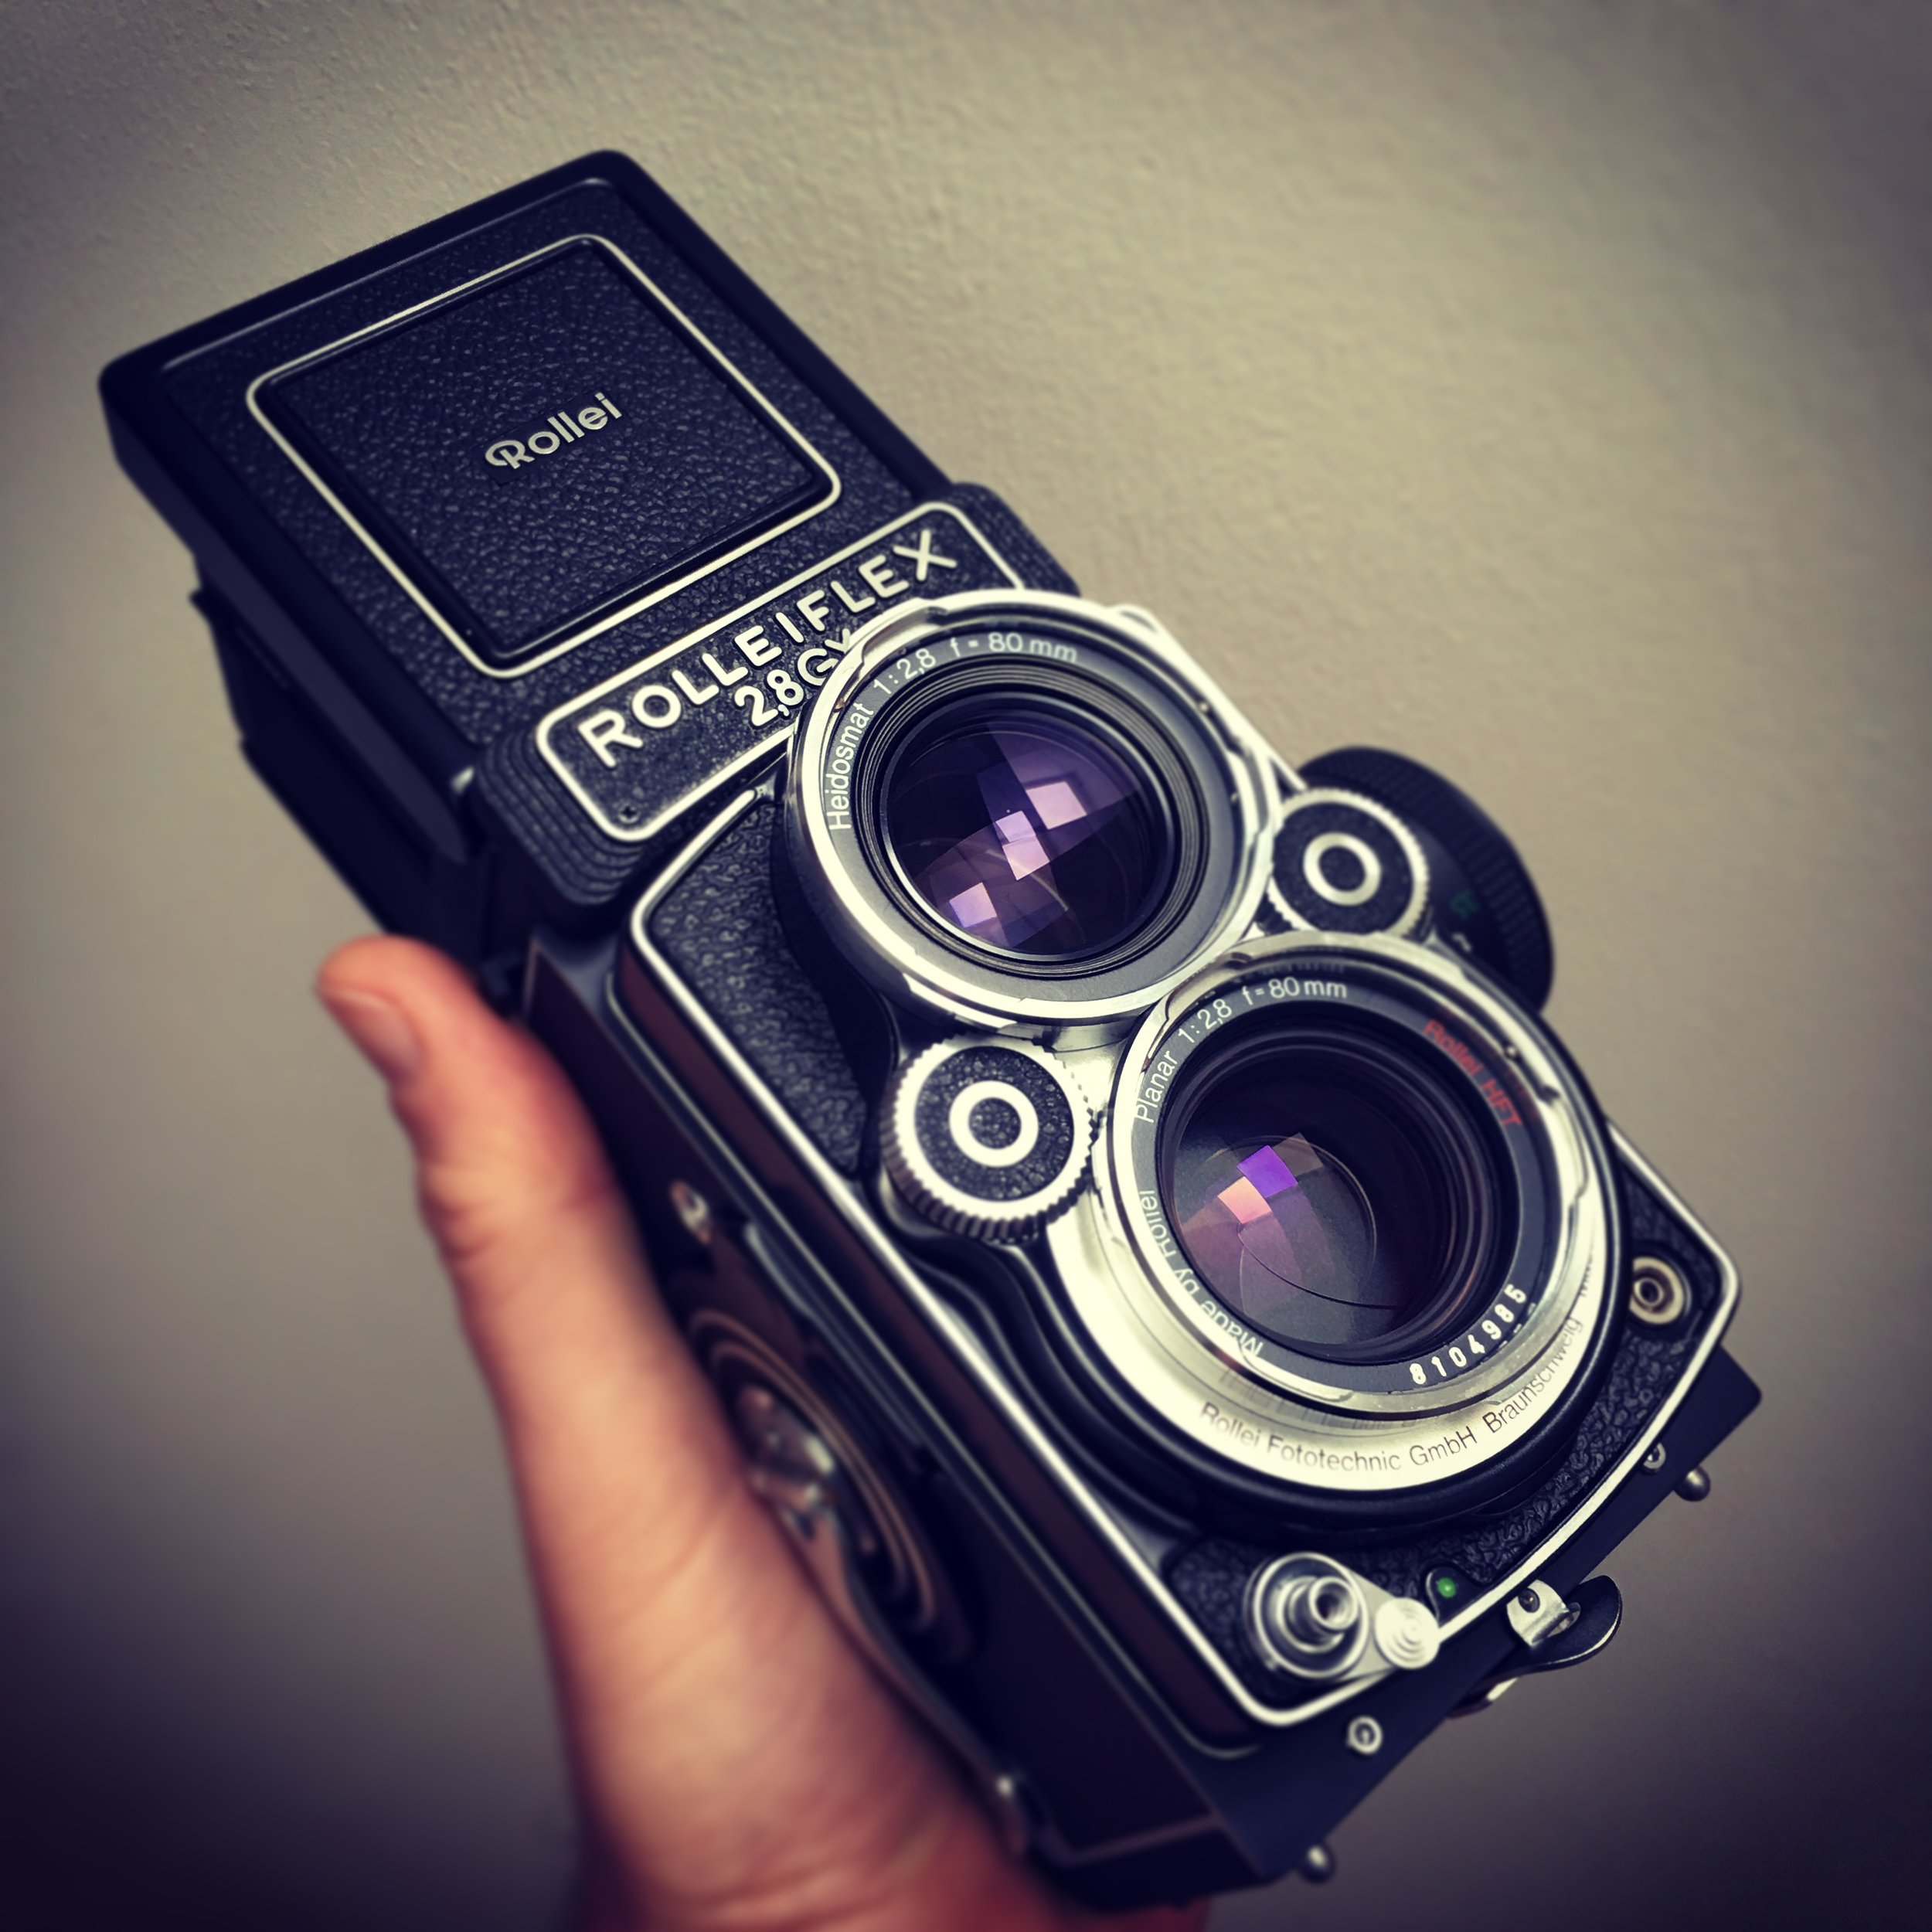 A Rolleiflex medium format camera. Not particularly cheap, if I'm honest, but very simple and lovely to use.